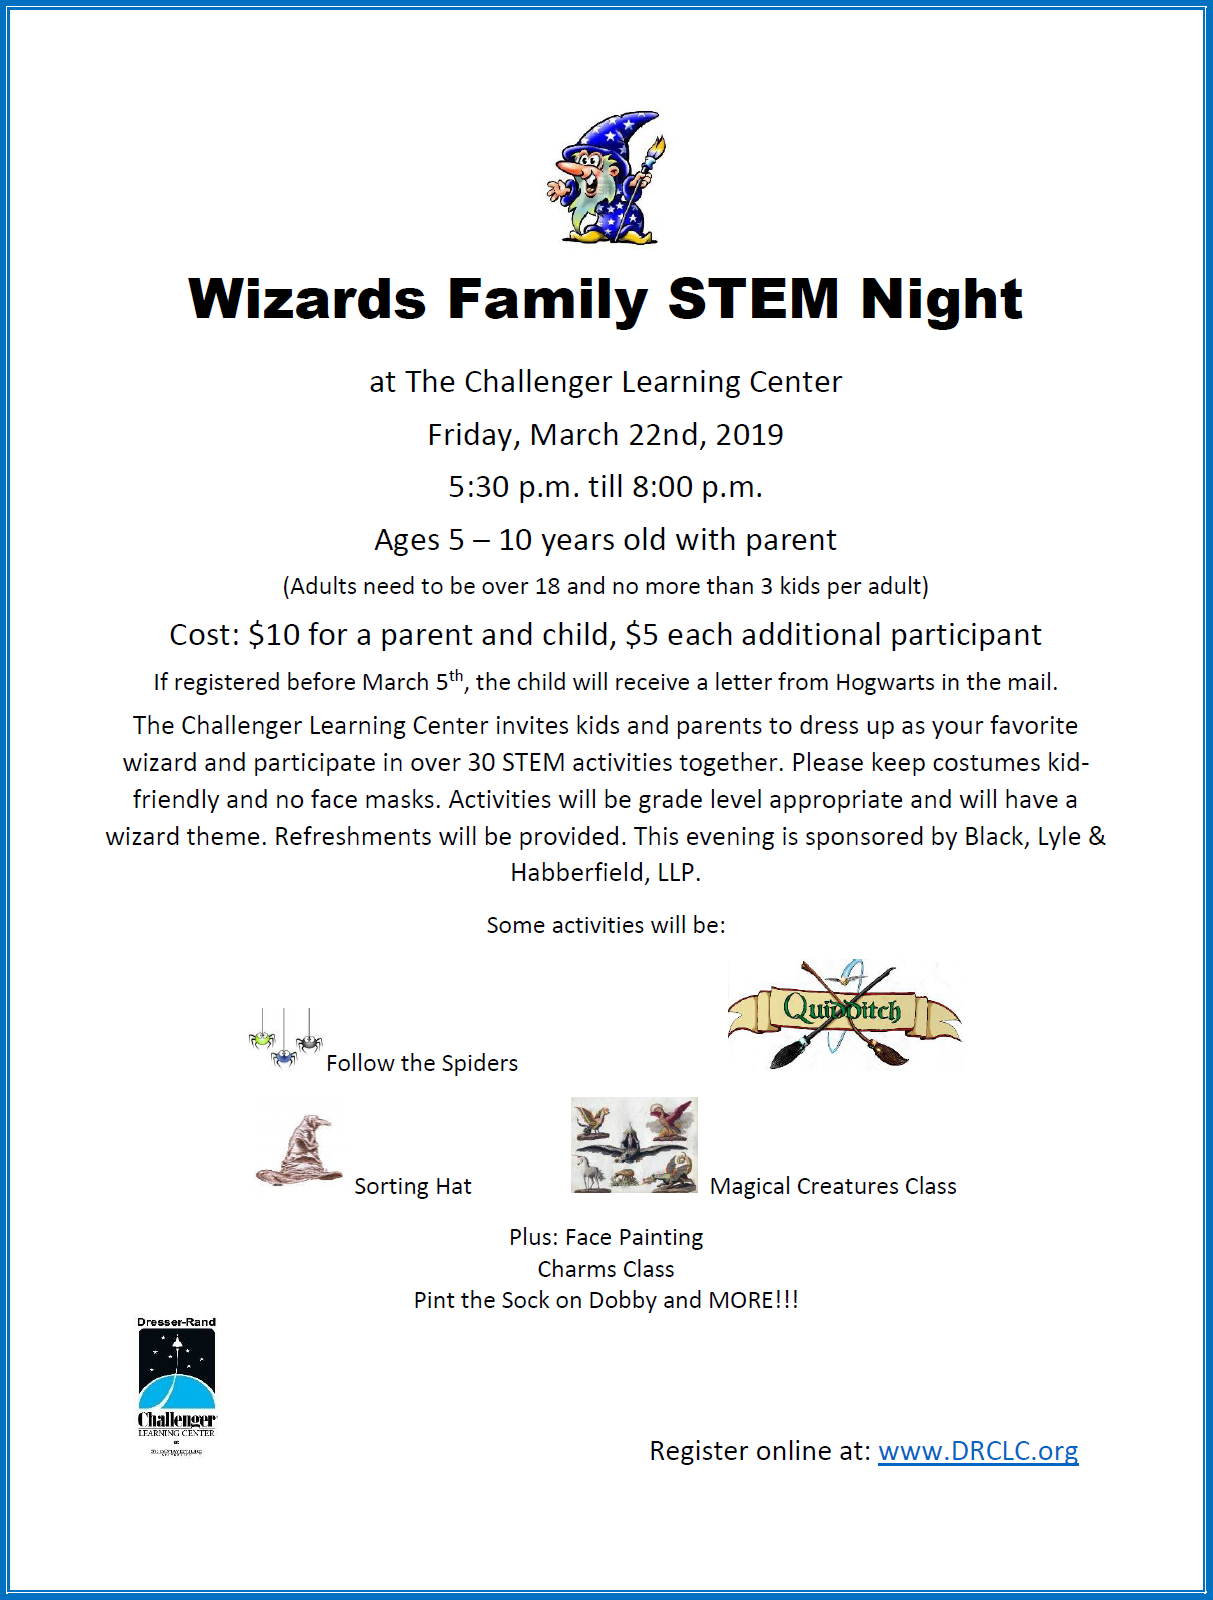 Wizard Family STEM Night flyer.png